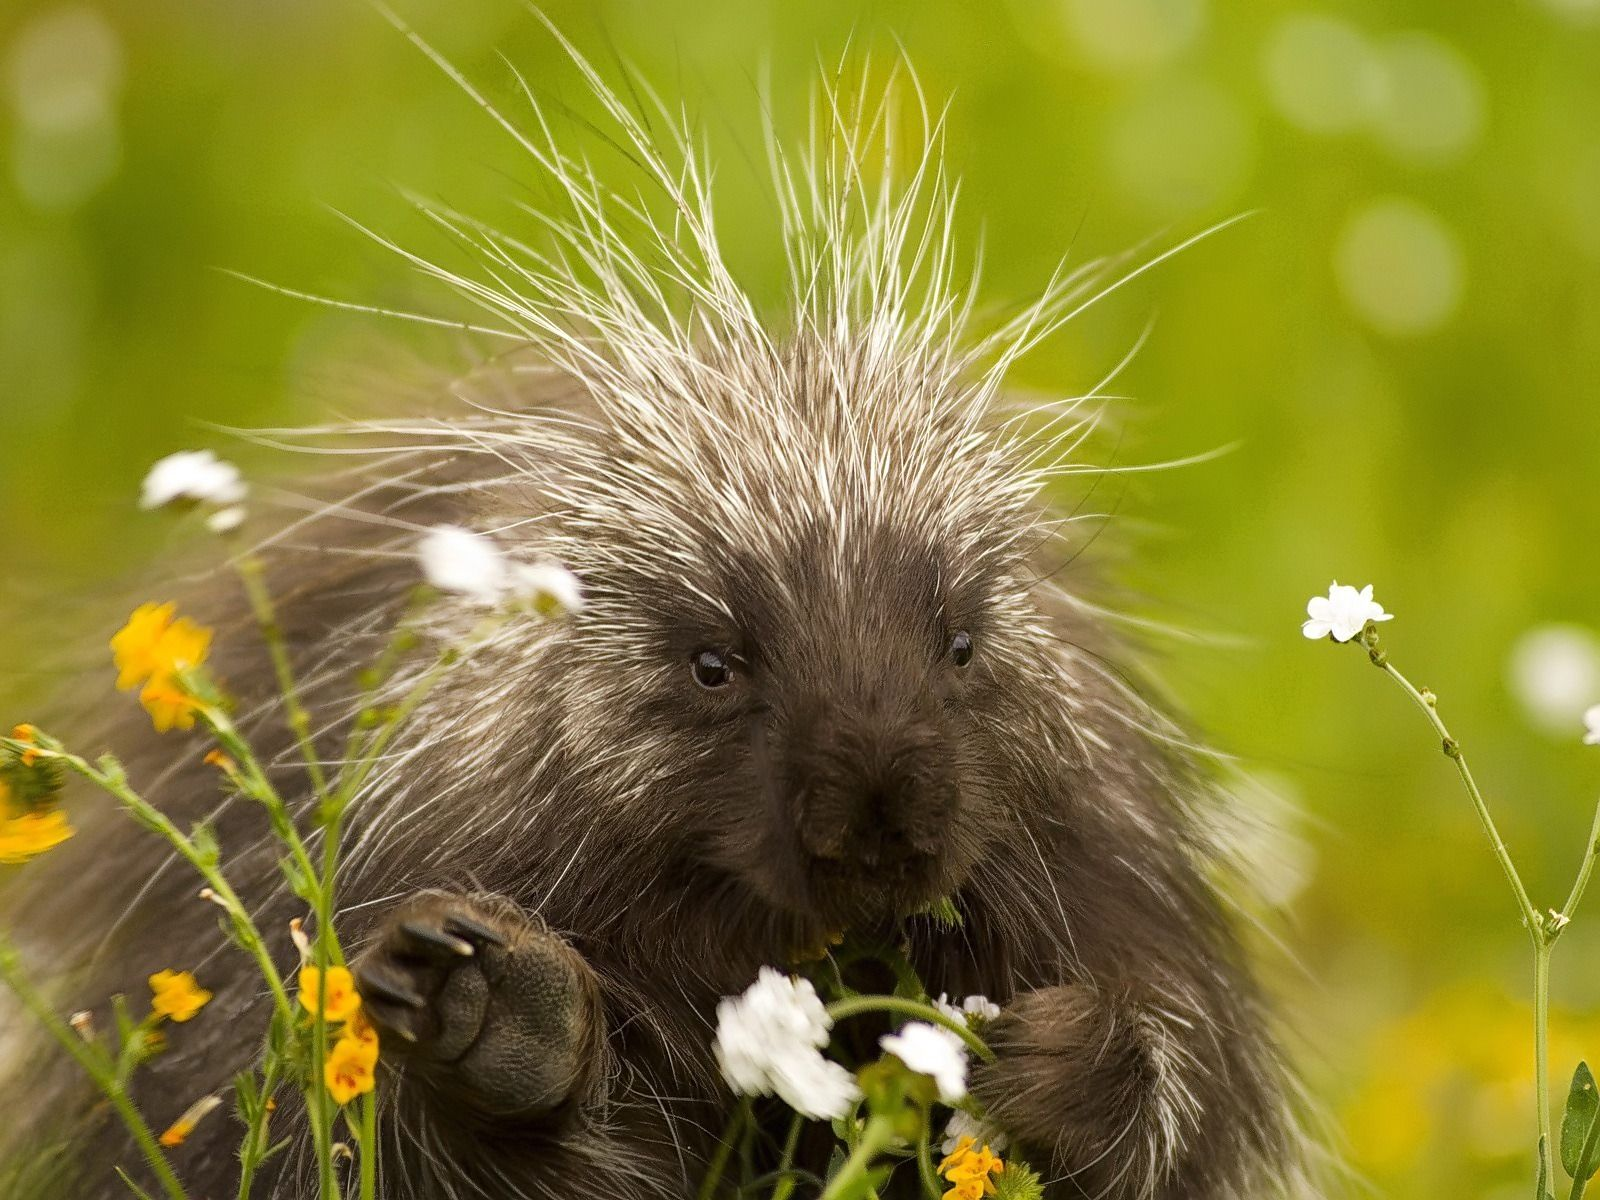 Porcupine Wallpapers Porcupines Animals Wallpapers in jpg format for